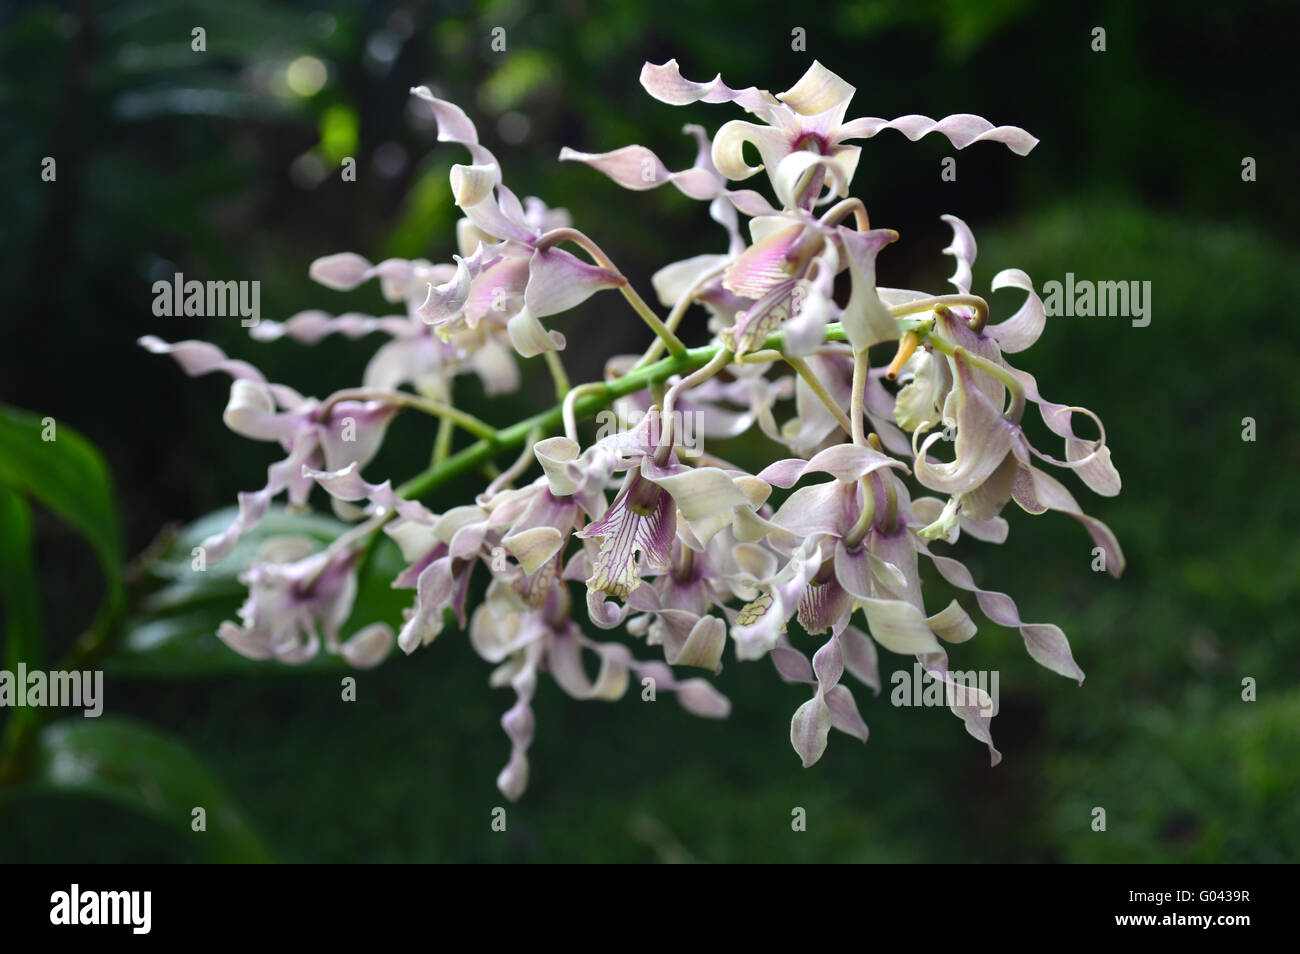 Antelope Dendrobium Orchid, Dendrobium sp., Family Orchidaceae, Central of Thailand Stock Photo